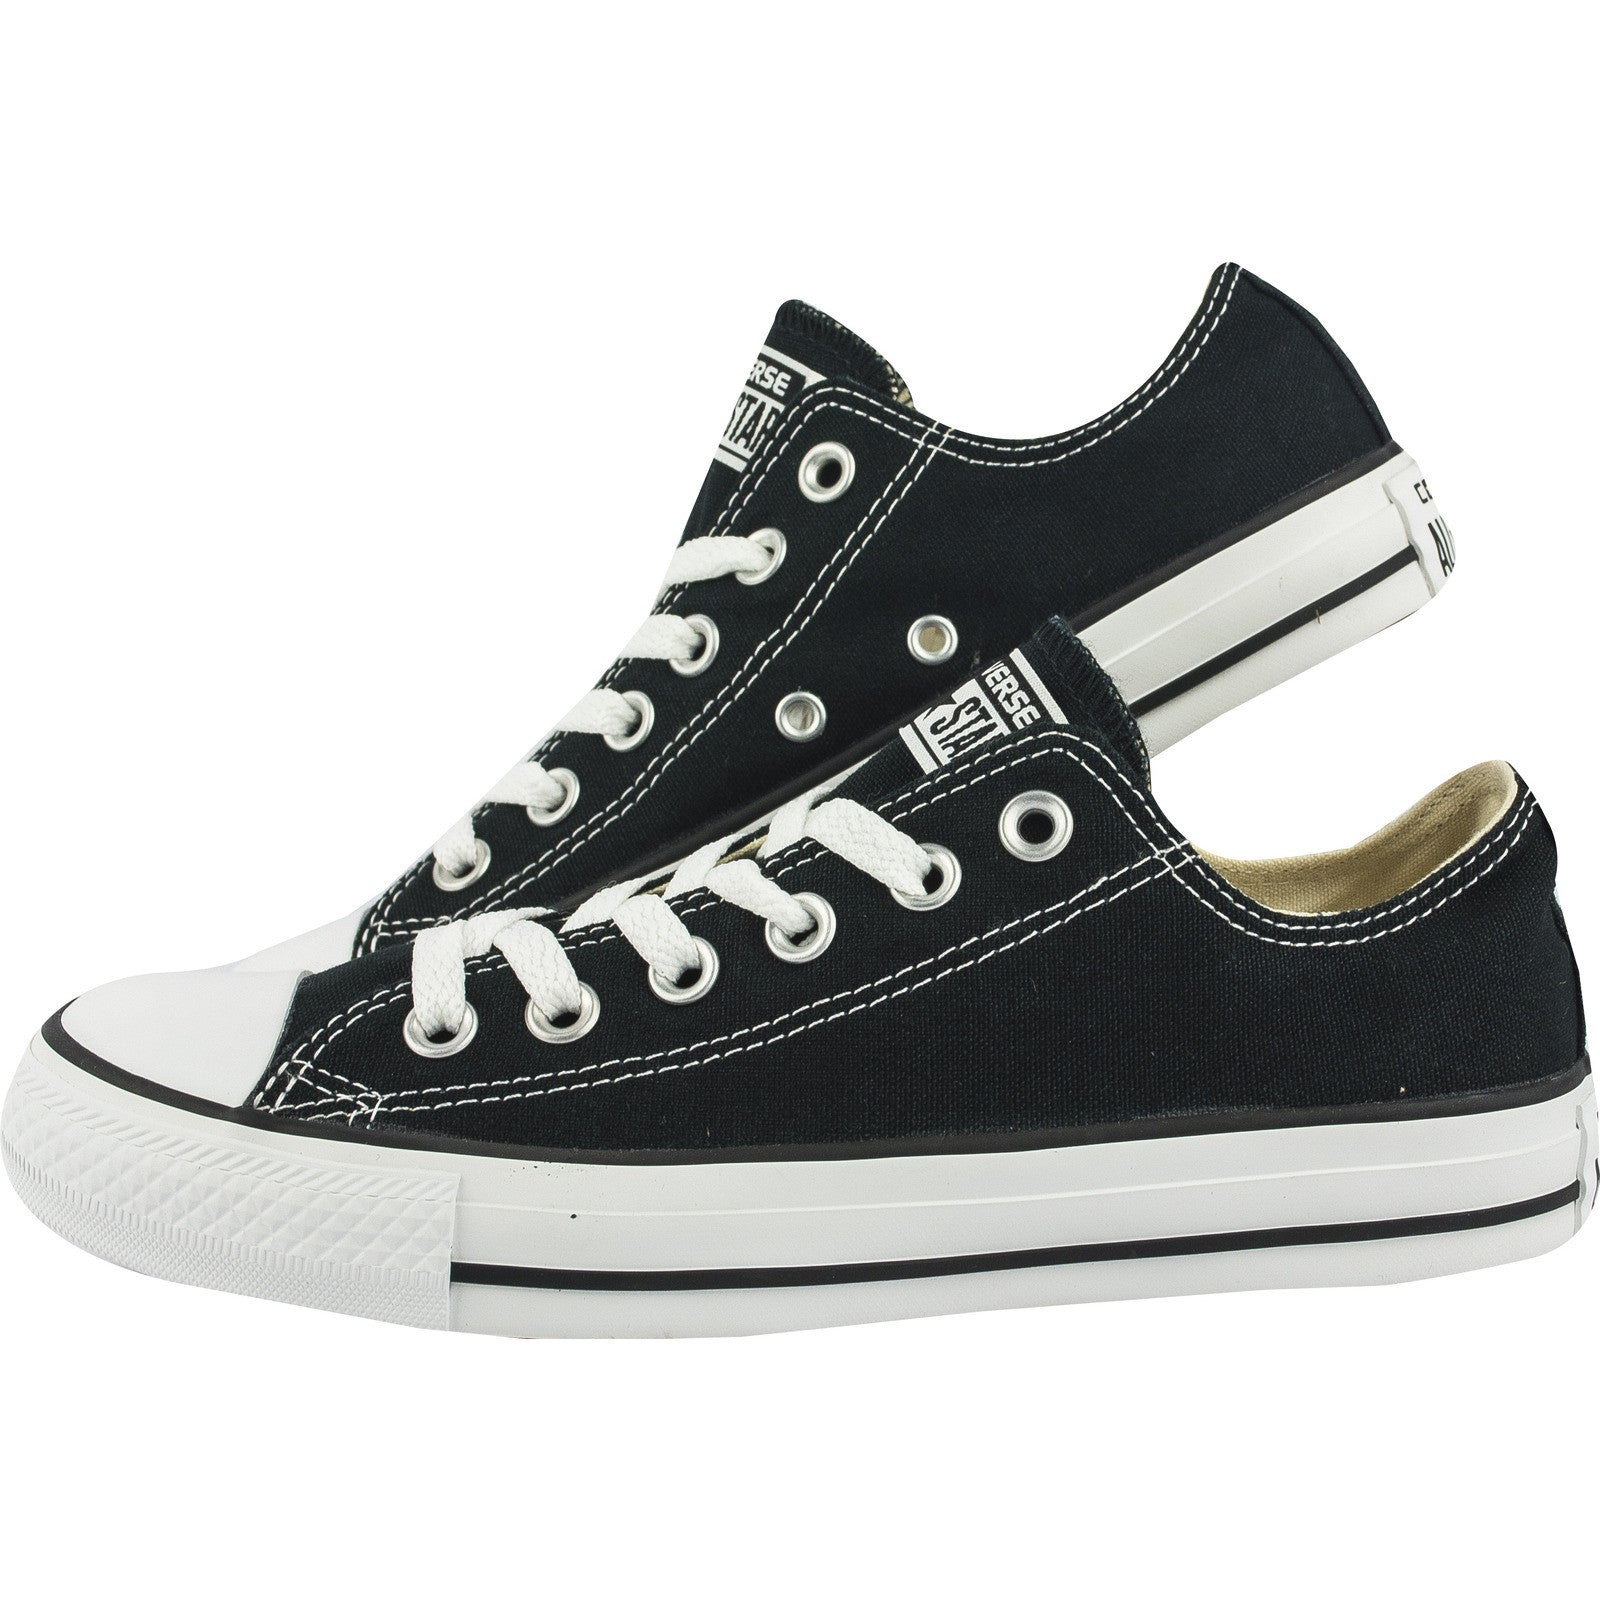 dd9d752b750c ... low price converse classic chuck taylor all star black low tops m9166c  sneaker men women ee4a3 ...